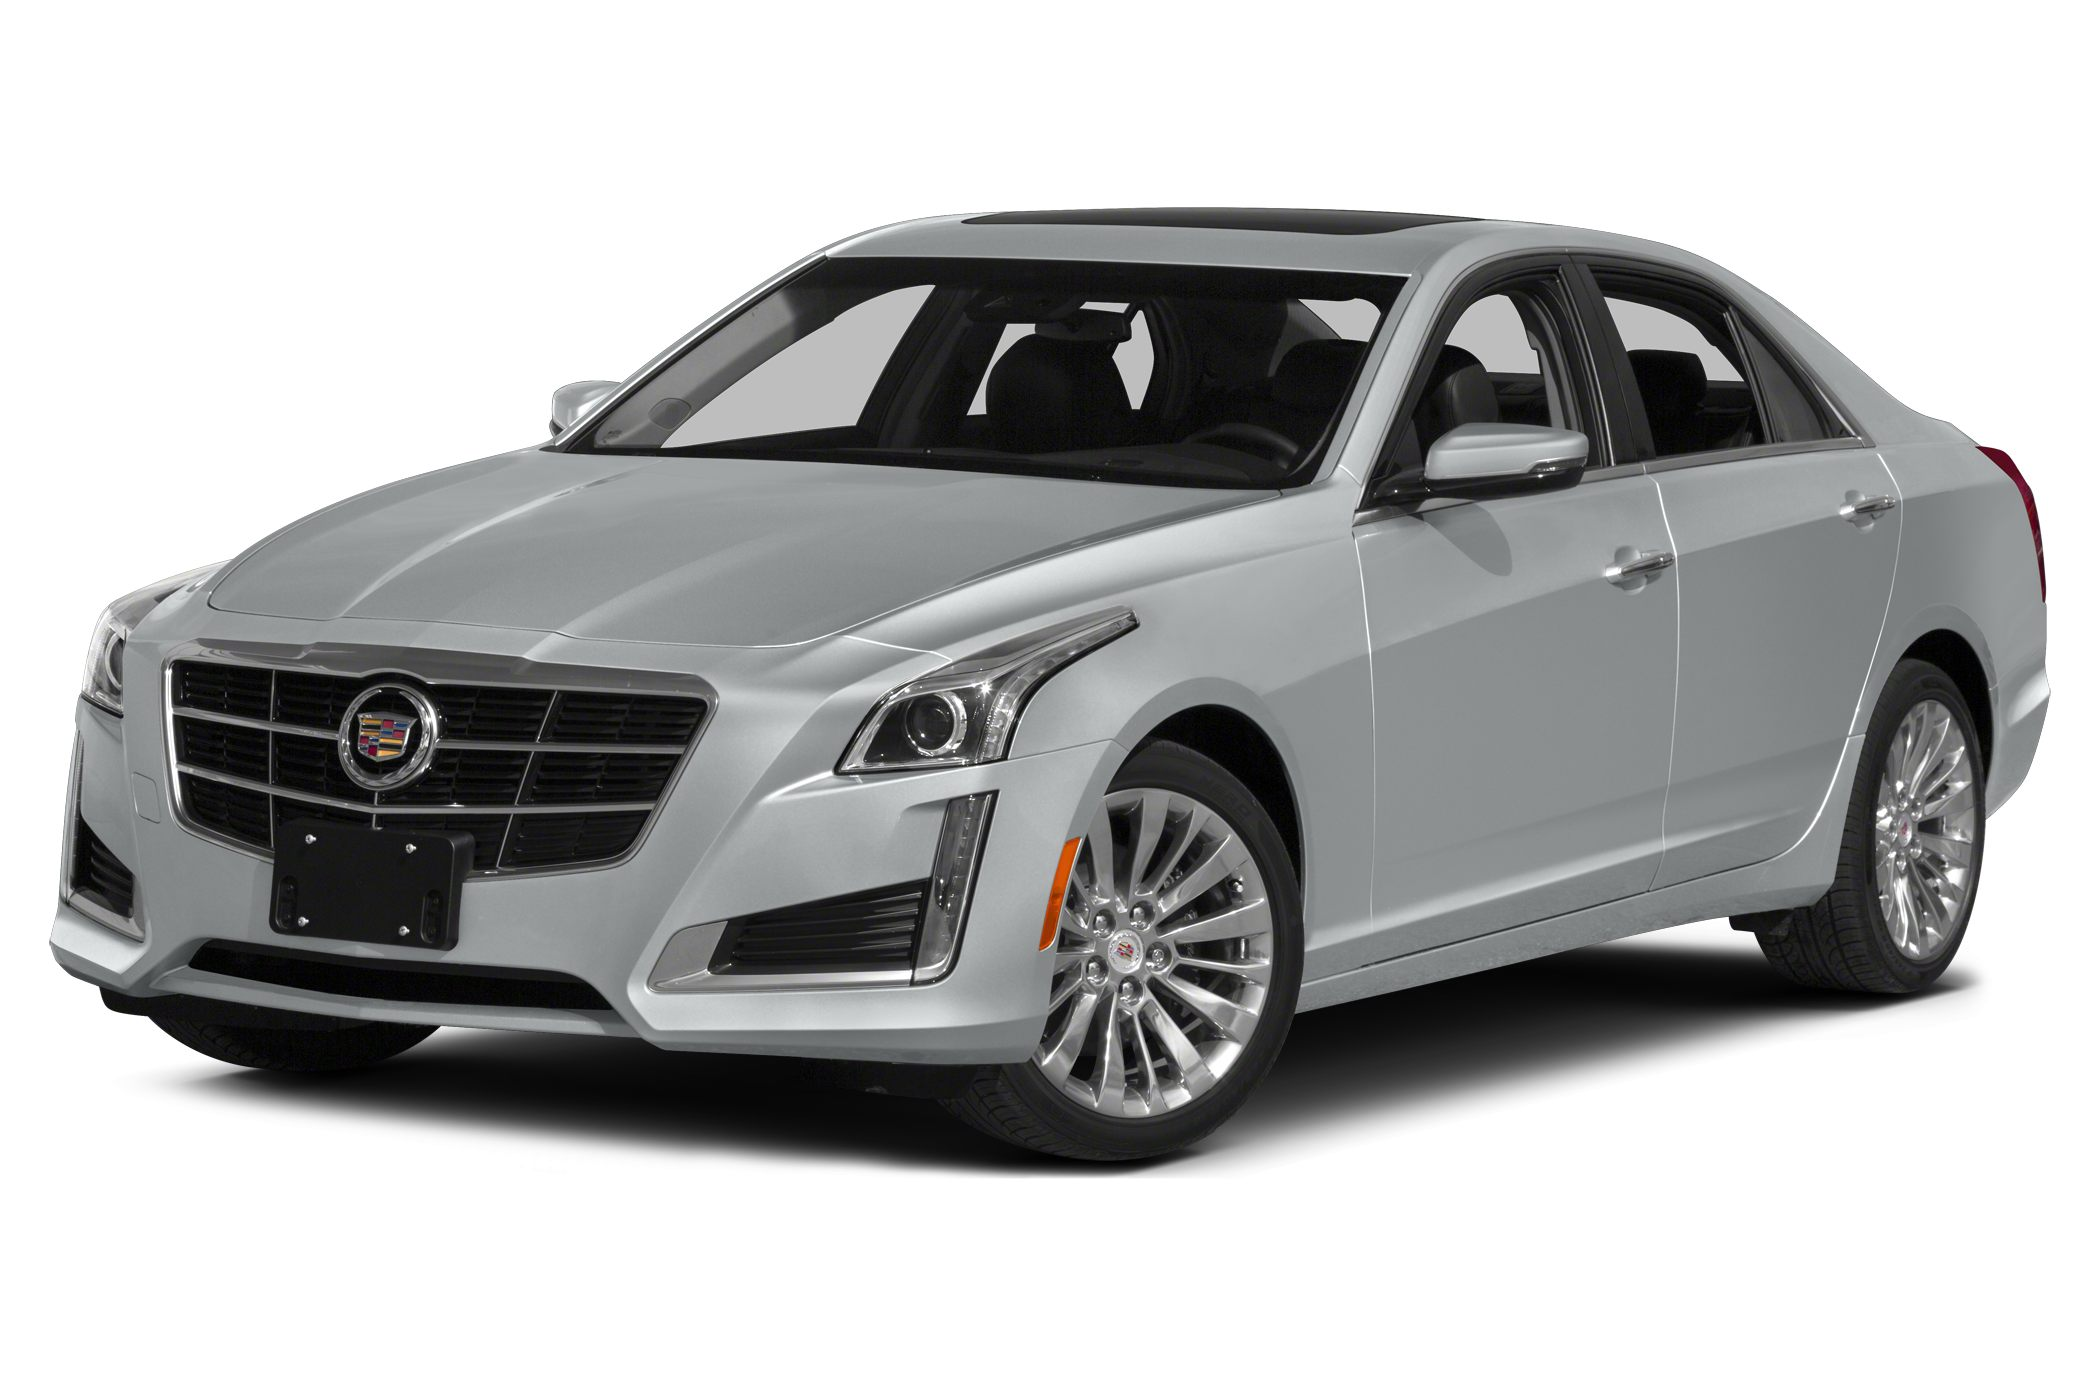 2014 Cadillac CTS 2.0L Turbo Sedan for sale in Neosho for $52,520 with 1 miles